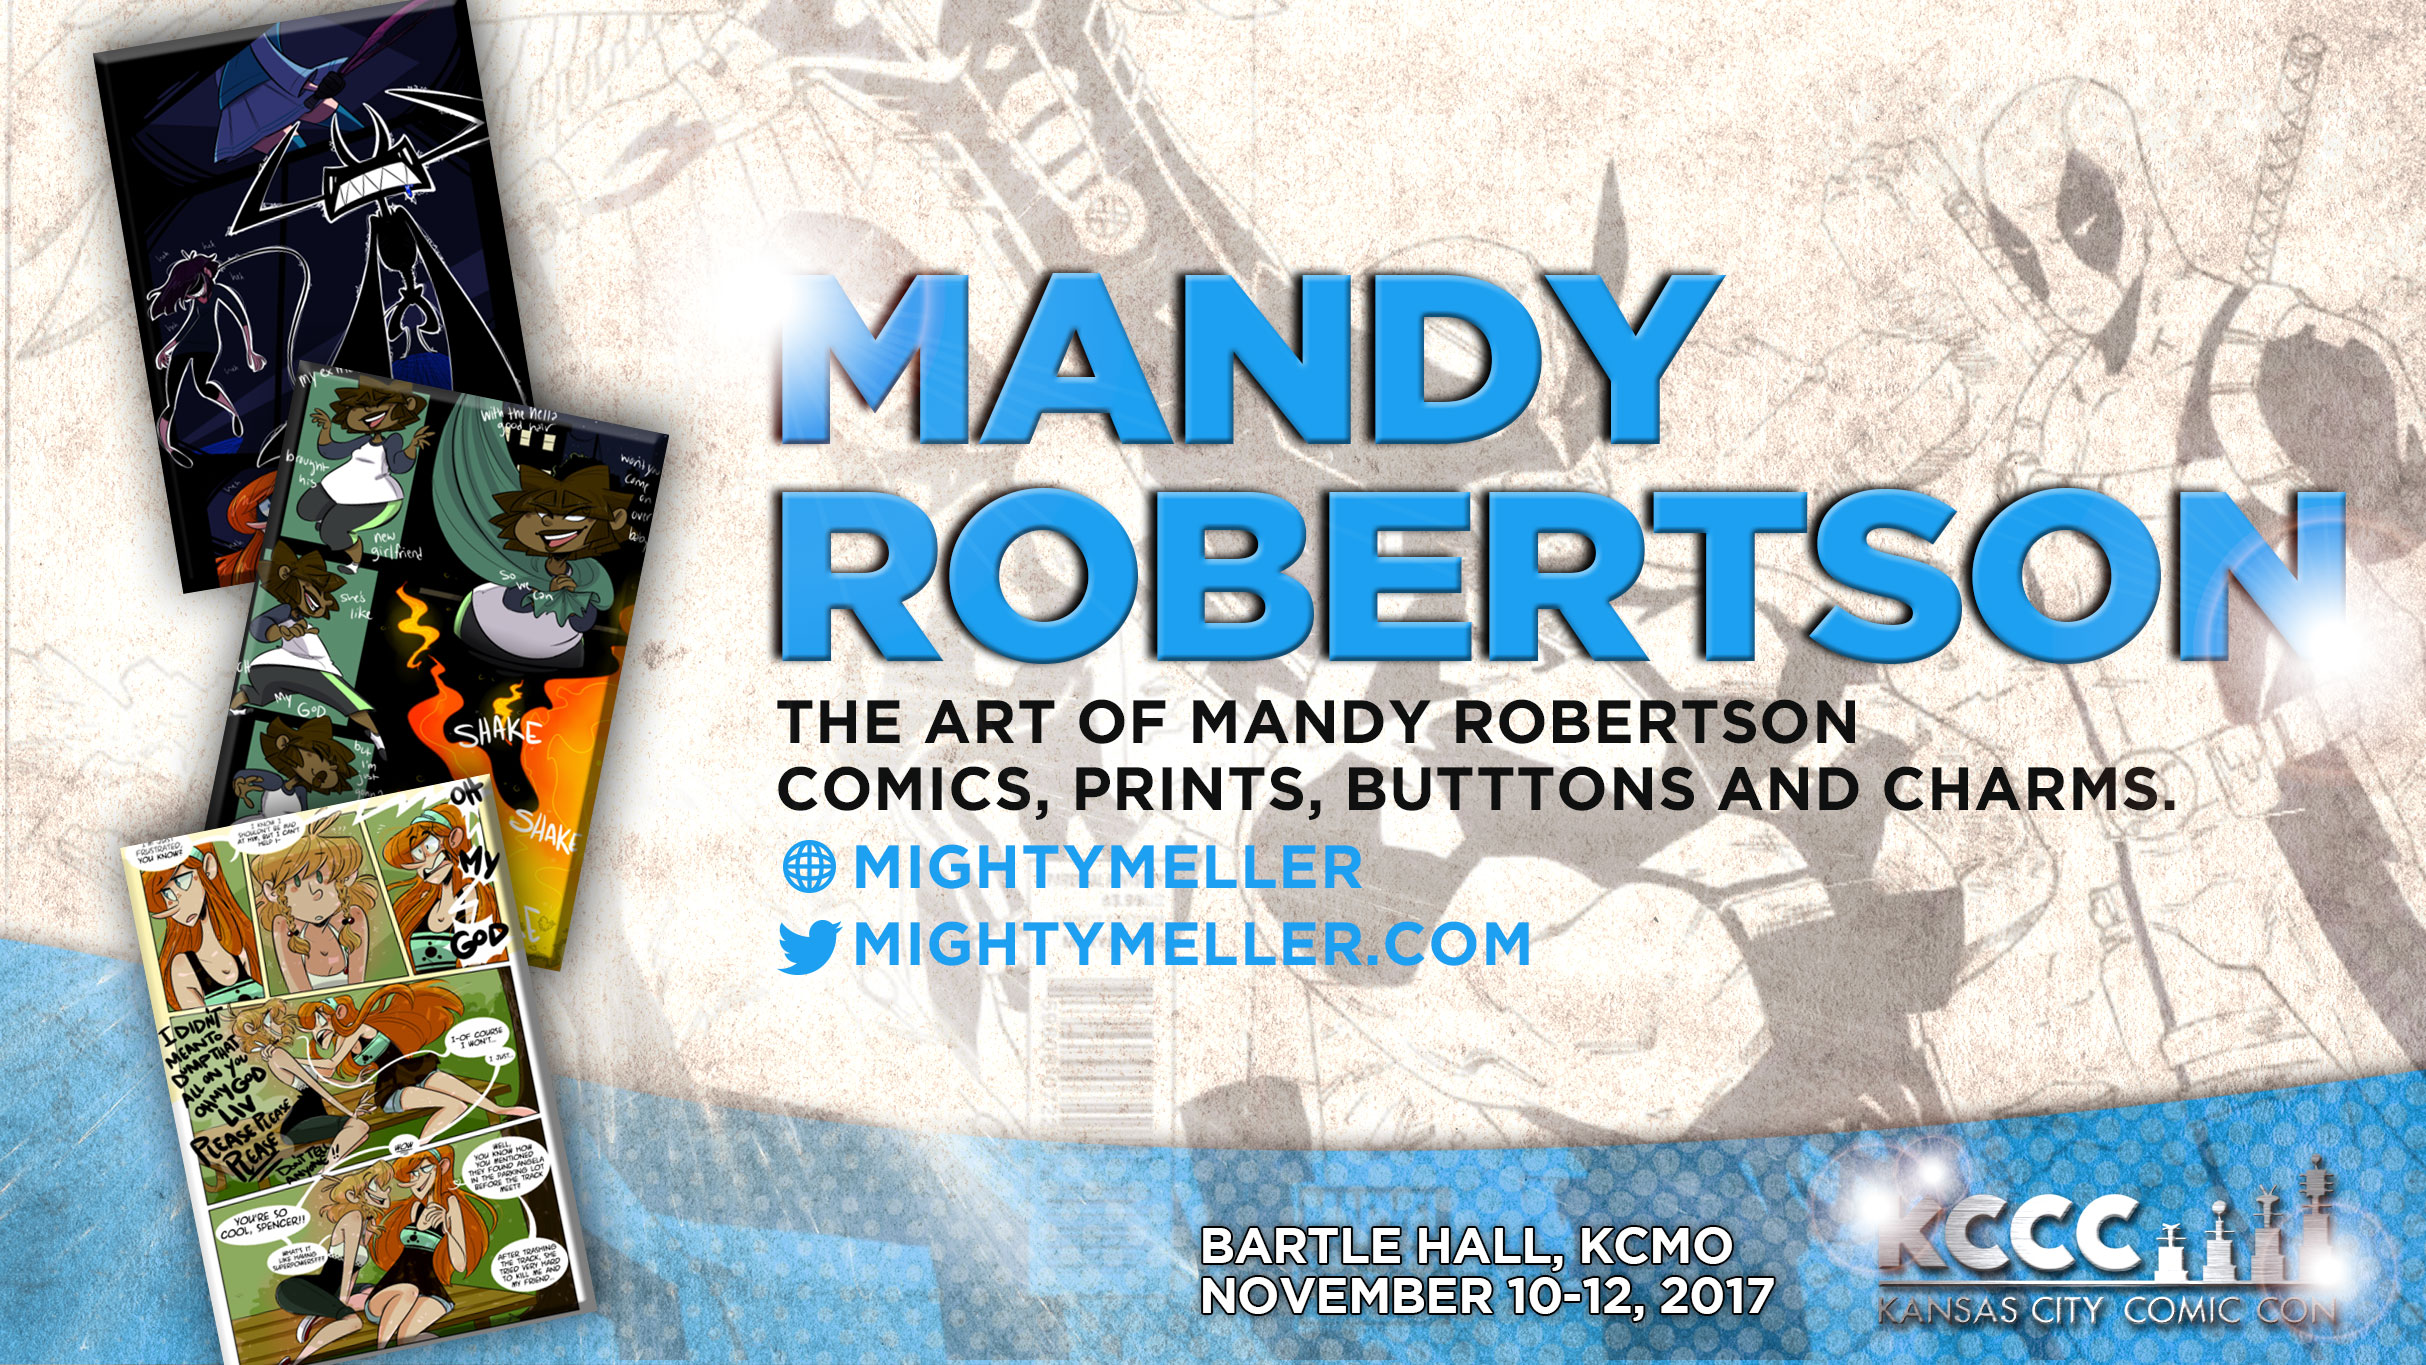 KCCC_ANNOUNCEMENT_Sketch_MandyRobertson.jpg